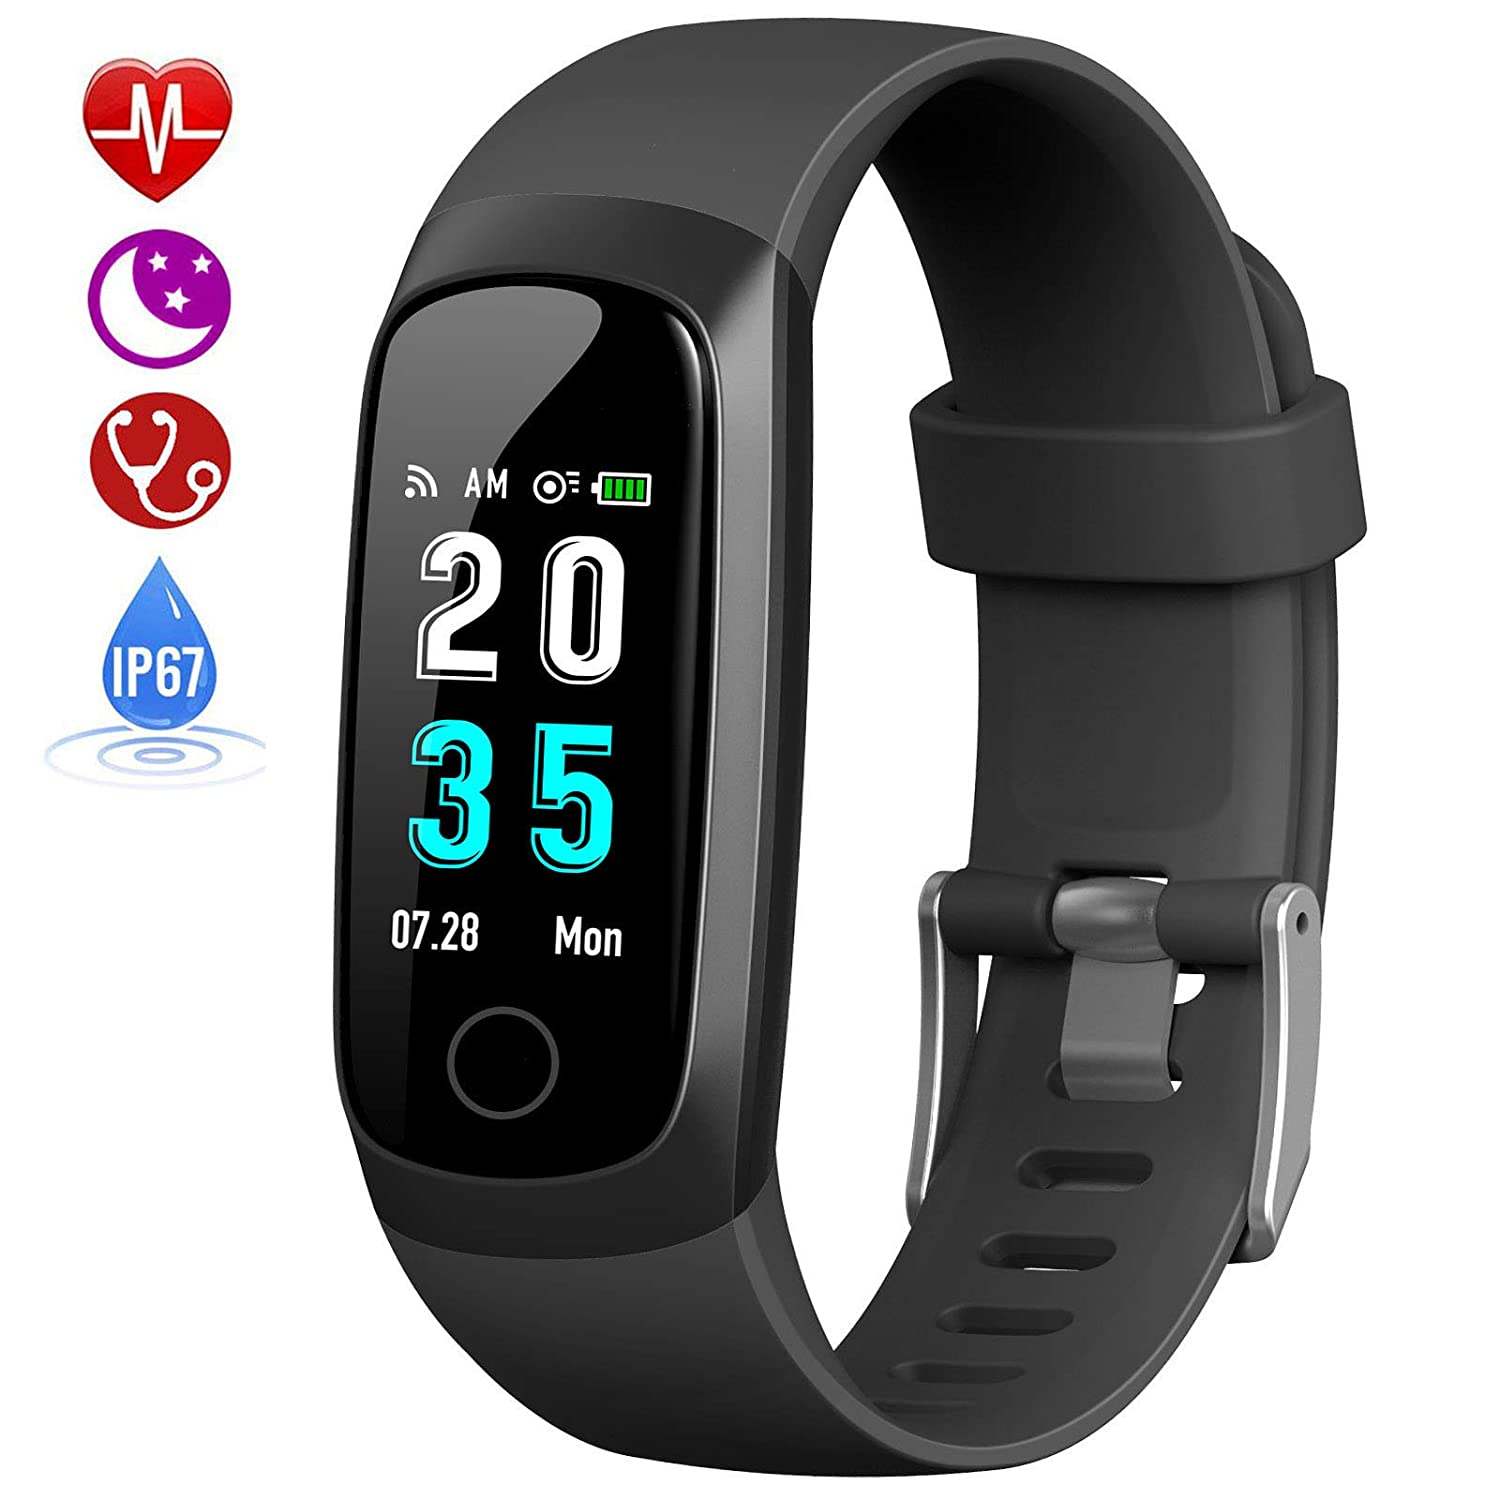 HETP Fitness Tracker, Heart Rate Activity Tracker Fitness Wristband Smart  Watch Waterproof IP67 Blood Pressure Smart Bracelet with Stopwatch Sport  GPS